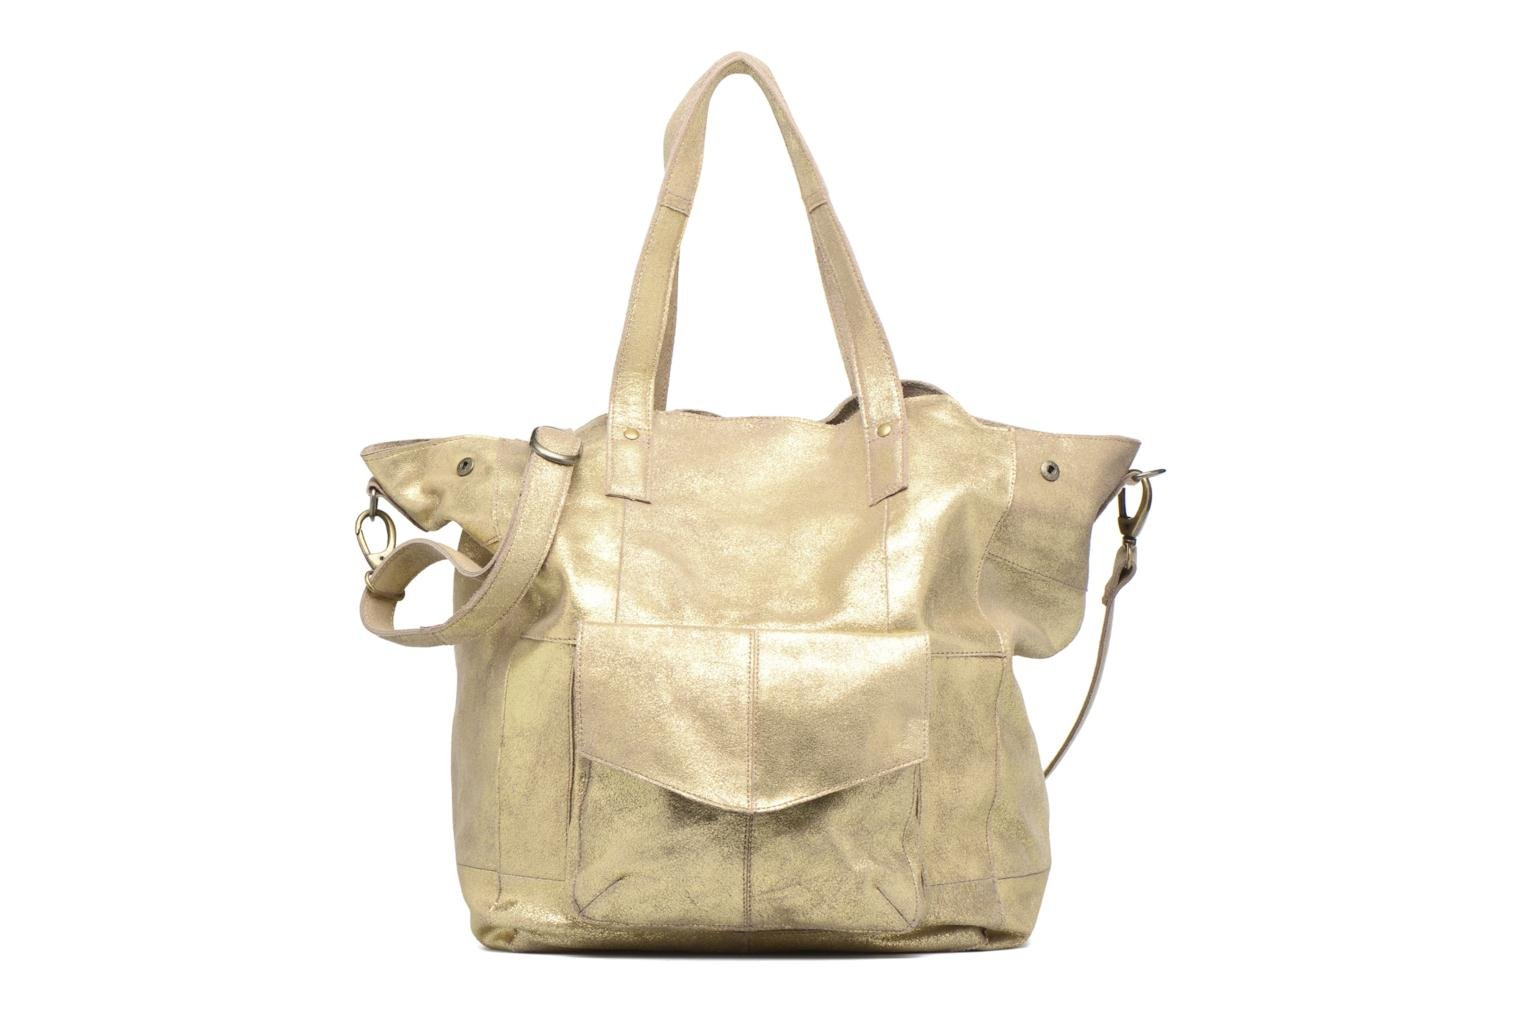 Handtassen Pieces Vanity Leather Big bag Foil Goud en brons detail